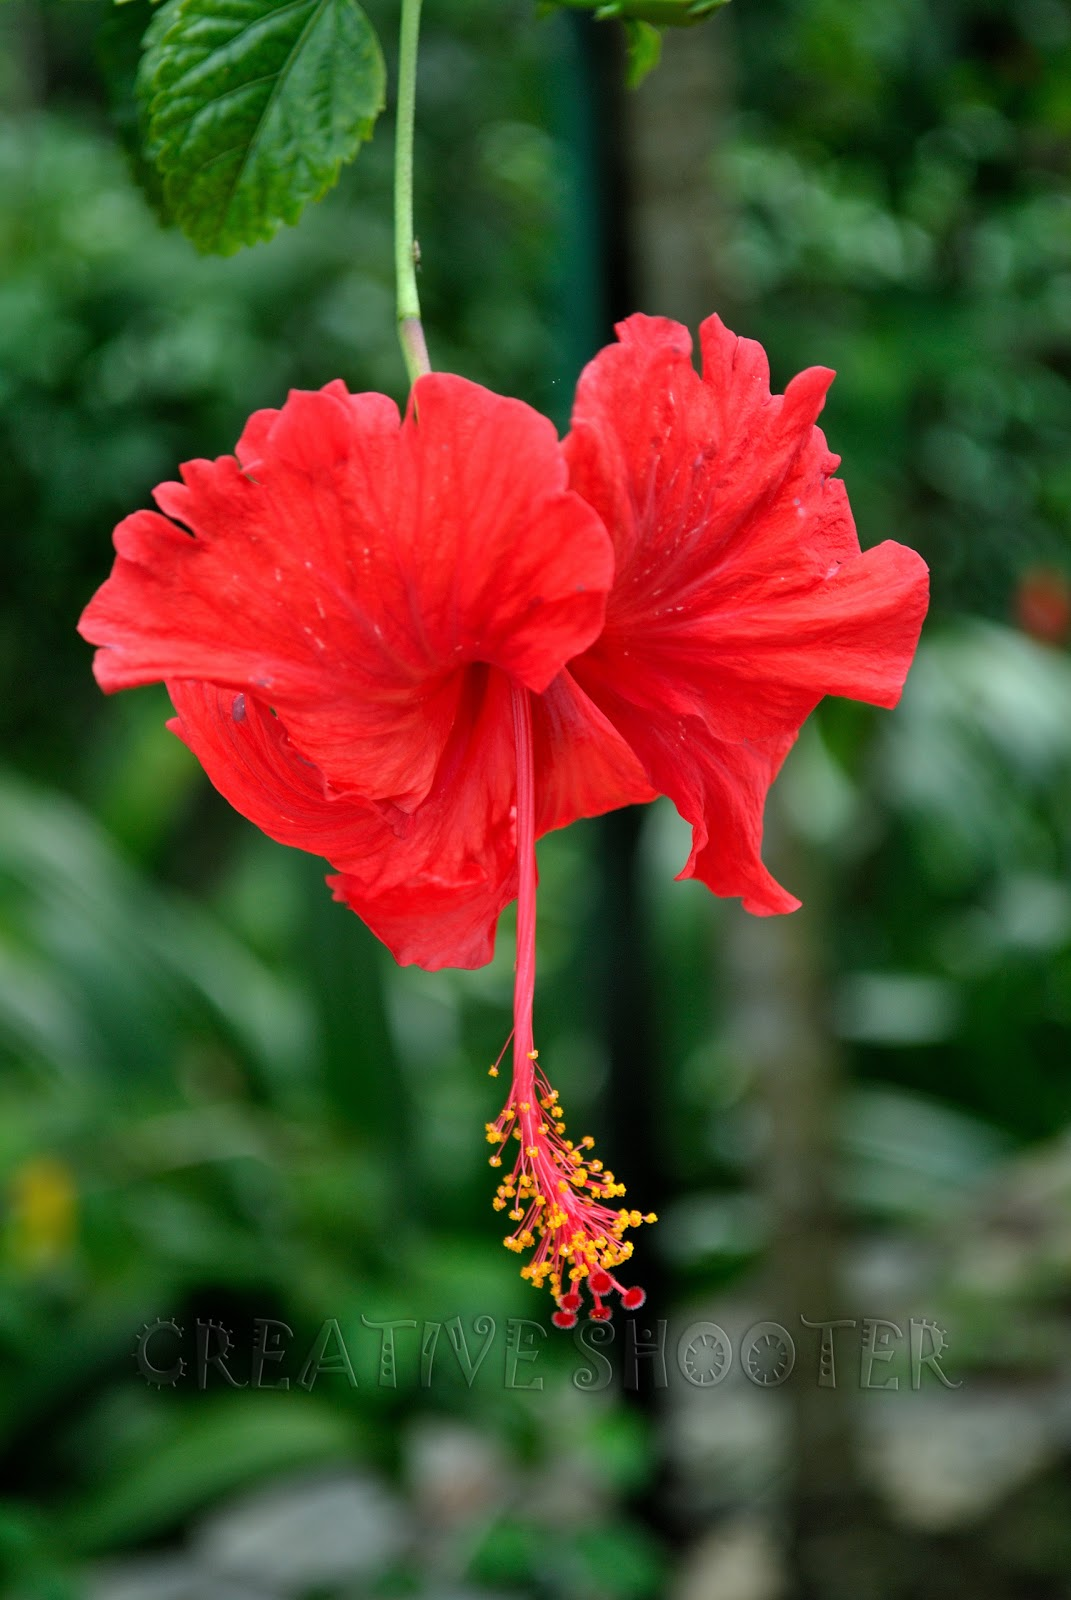 Cls images hibiscus malaysia national flower hibiscus malaysia national flower izmirmasajfo